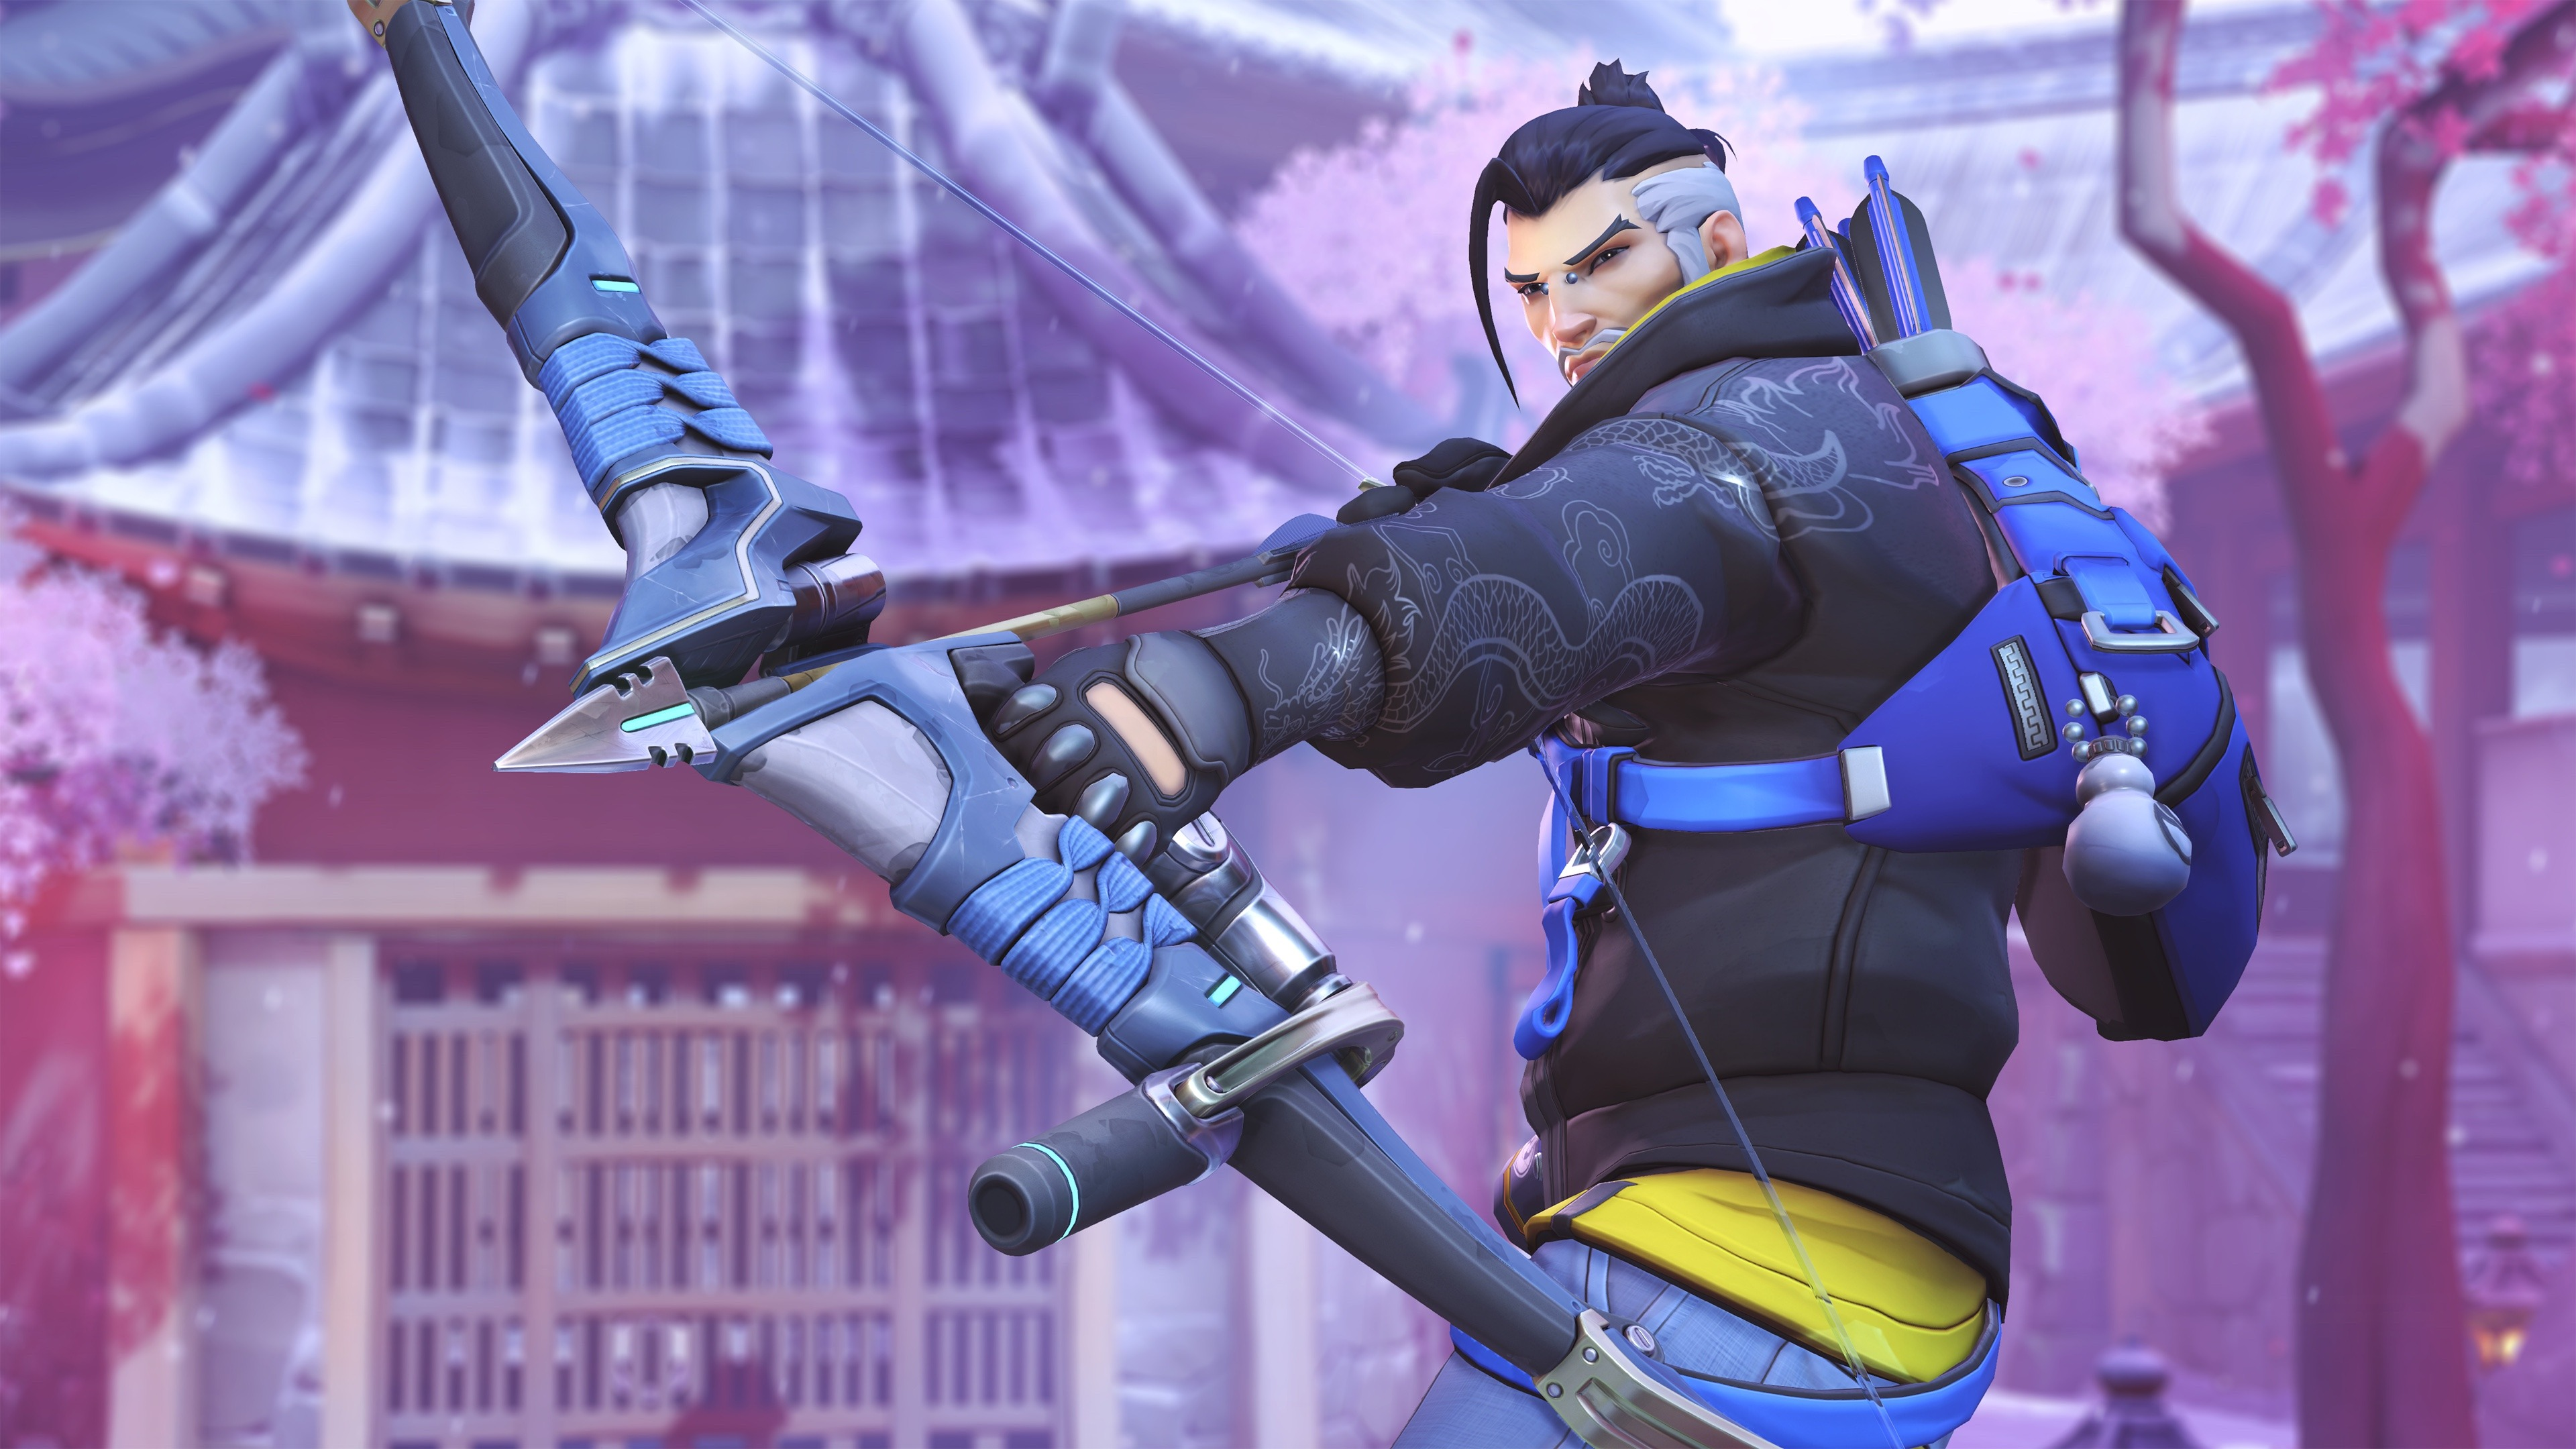 overwatch hanzo winterland, hd games, 4k wallpapers, images